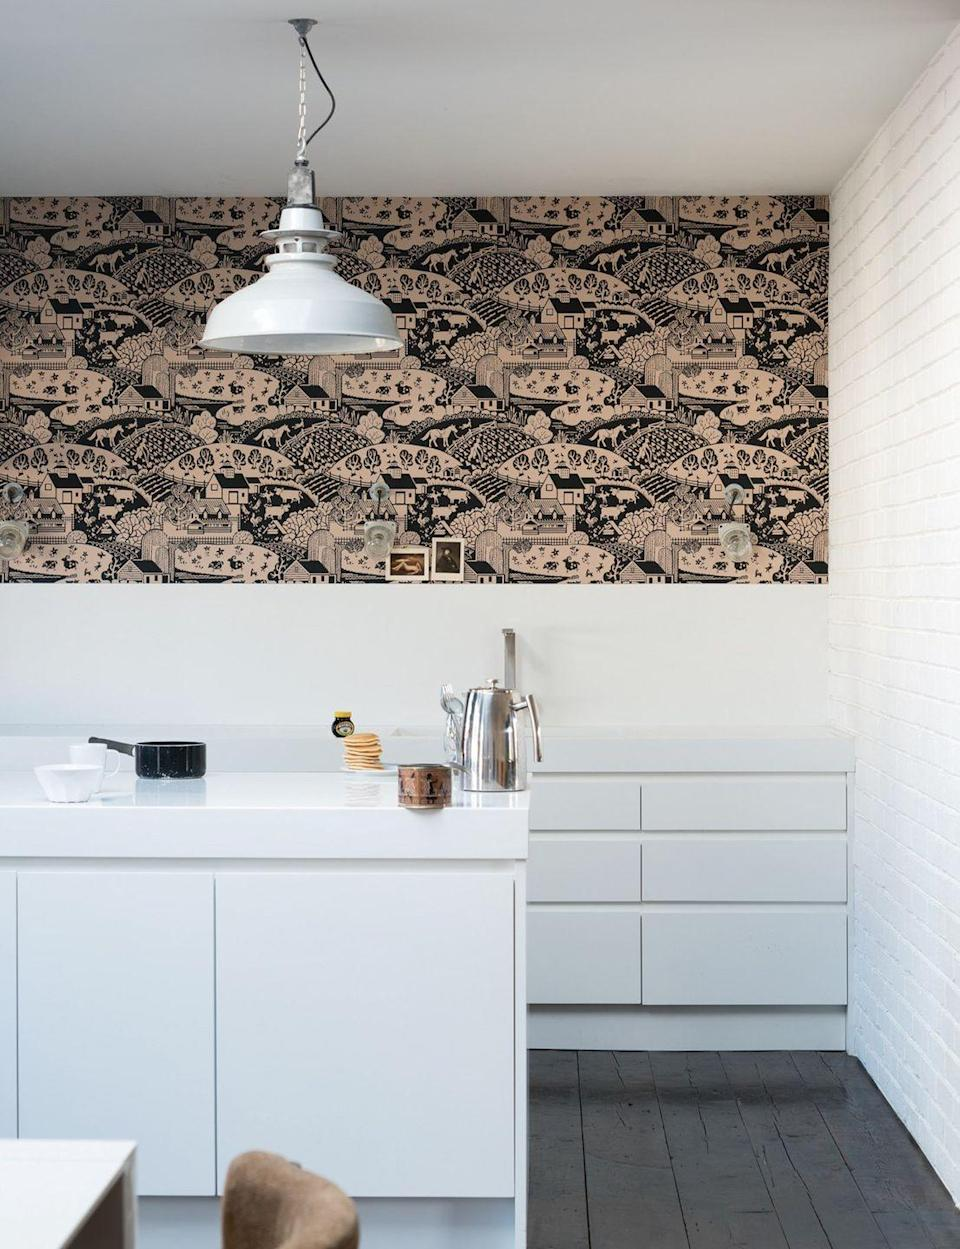 """<p>If you'd prefer to keep your white kitchen counters free of decoration and accessories, a feature wall is a great way to add some colour and texture. <a href=""""https://www.housebeautiful.com/uk/decorate/walls/g36616909/paste-the-wall-wallpaper/"""" rel=""""nofollow noopener"""" target=""""_blank"""" data-ylk=""""slk:Explore 13 paste the wall wallpapers for easy application"""" class=""""link rapid-noclick-resp"""">Explore 13 paste the wall wallpapers for easy application</a>.</p><p>Pictured: <a href=""""https://go.redirectingat.com?id=127X1599956&url=https%3A%2F%2Fwww.farrow-ball.com%2Fwallpaper%2Fgable&sref=https%3A%2F%2Fwww.housebeautiful.com%2Fuk%2Fdecorate%2Fkitchen%2Fg37409102%2Fwhite-kitchen%2F"""" rel=""""nofollow noopener"""" target=""""_blank"""" data-ylk=""""slk:Gable wallpaper at Farrow & Ball"""" class=""""link rapid-noclick-resp"""">Gable wallpaper at Farrow & Ball</a></p>"""